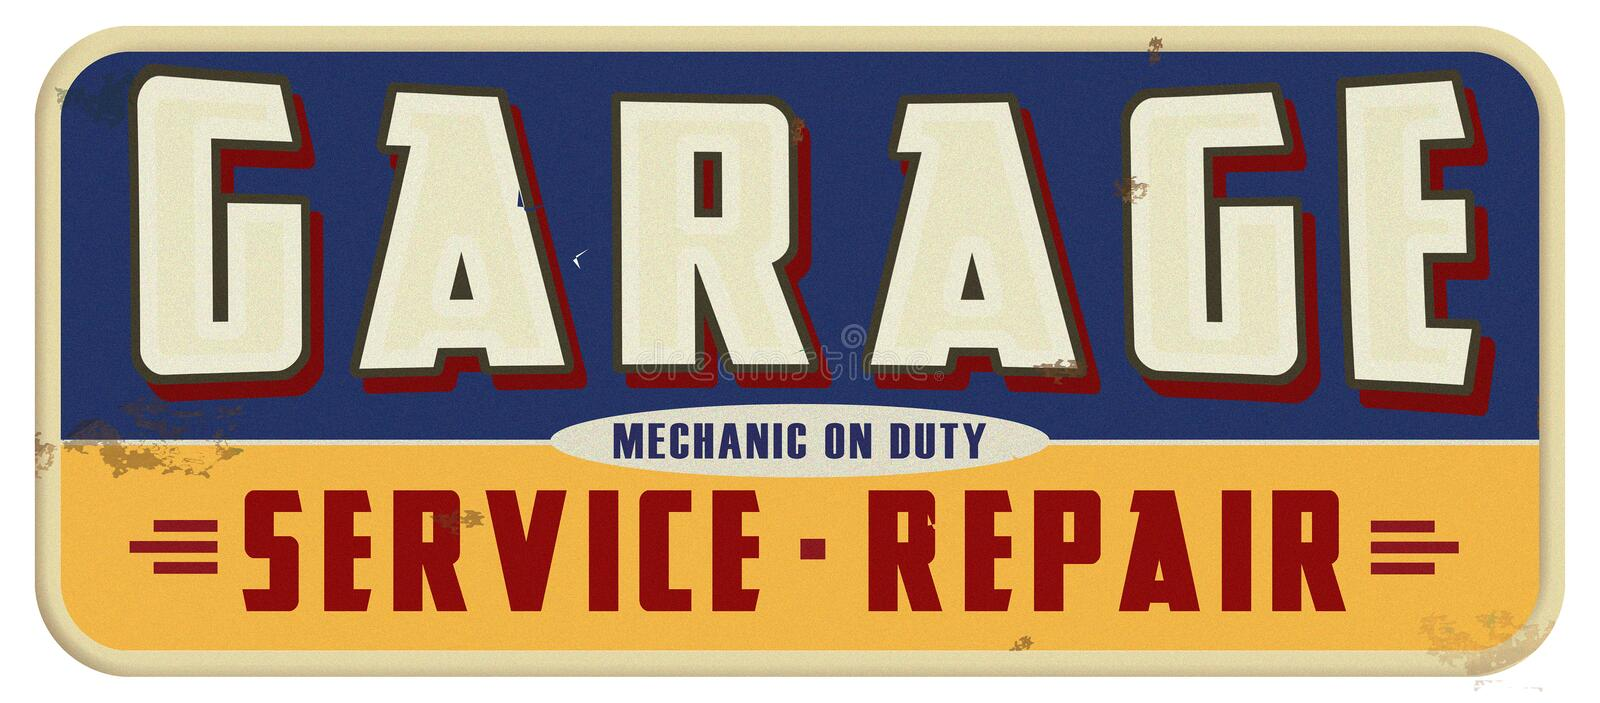 Mécanicien On Duty Sign de garage illustration stock